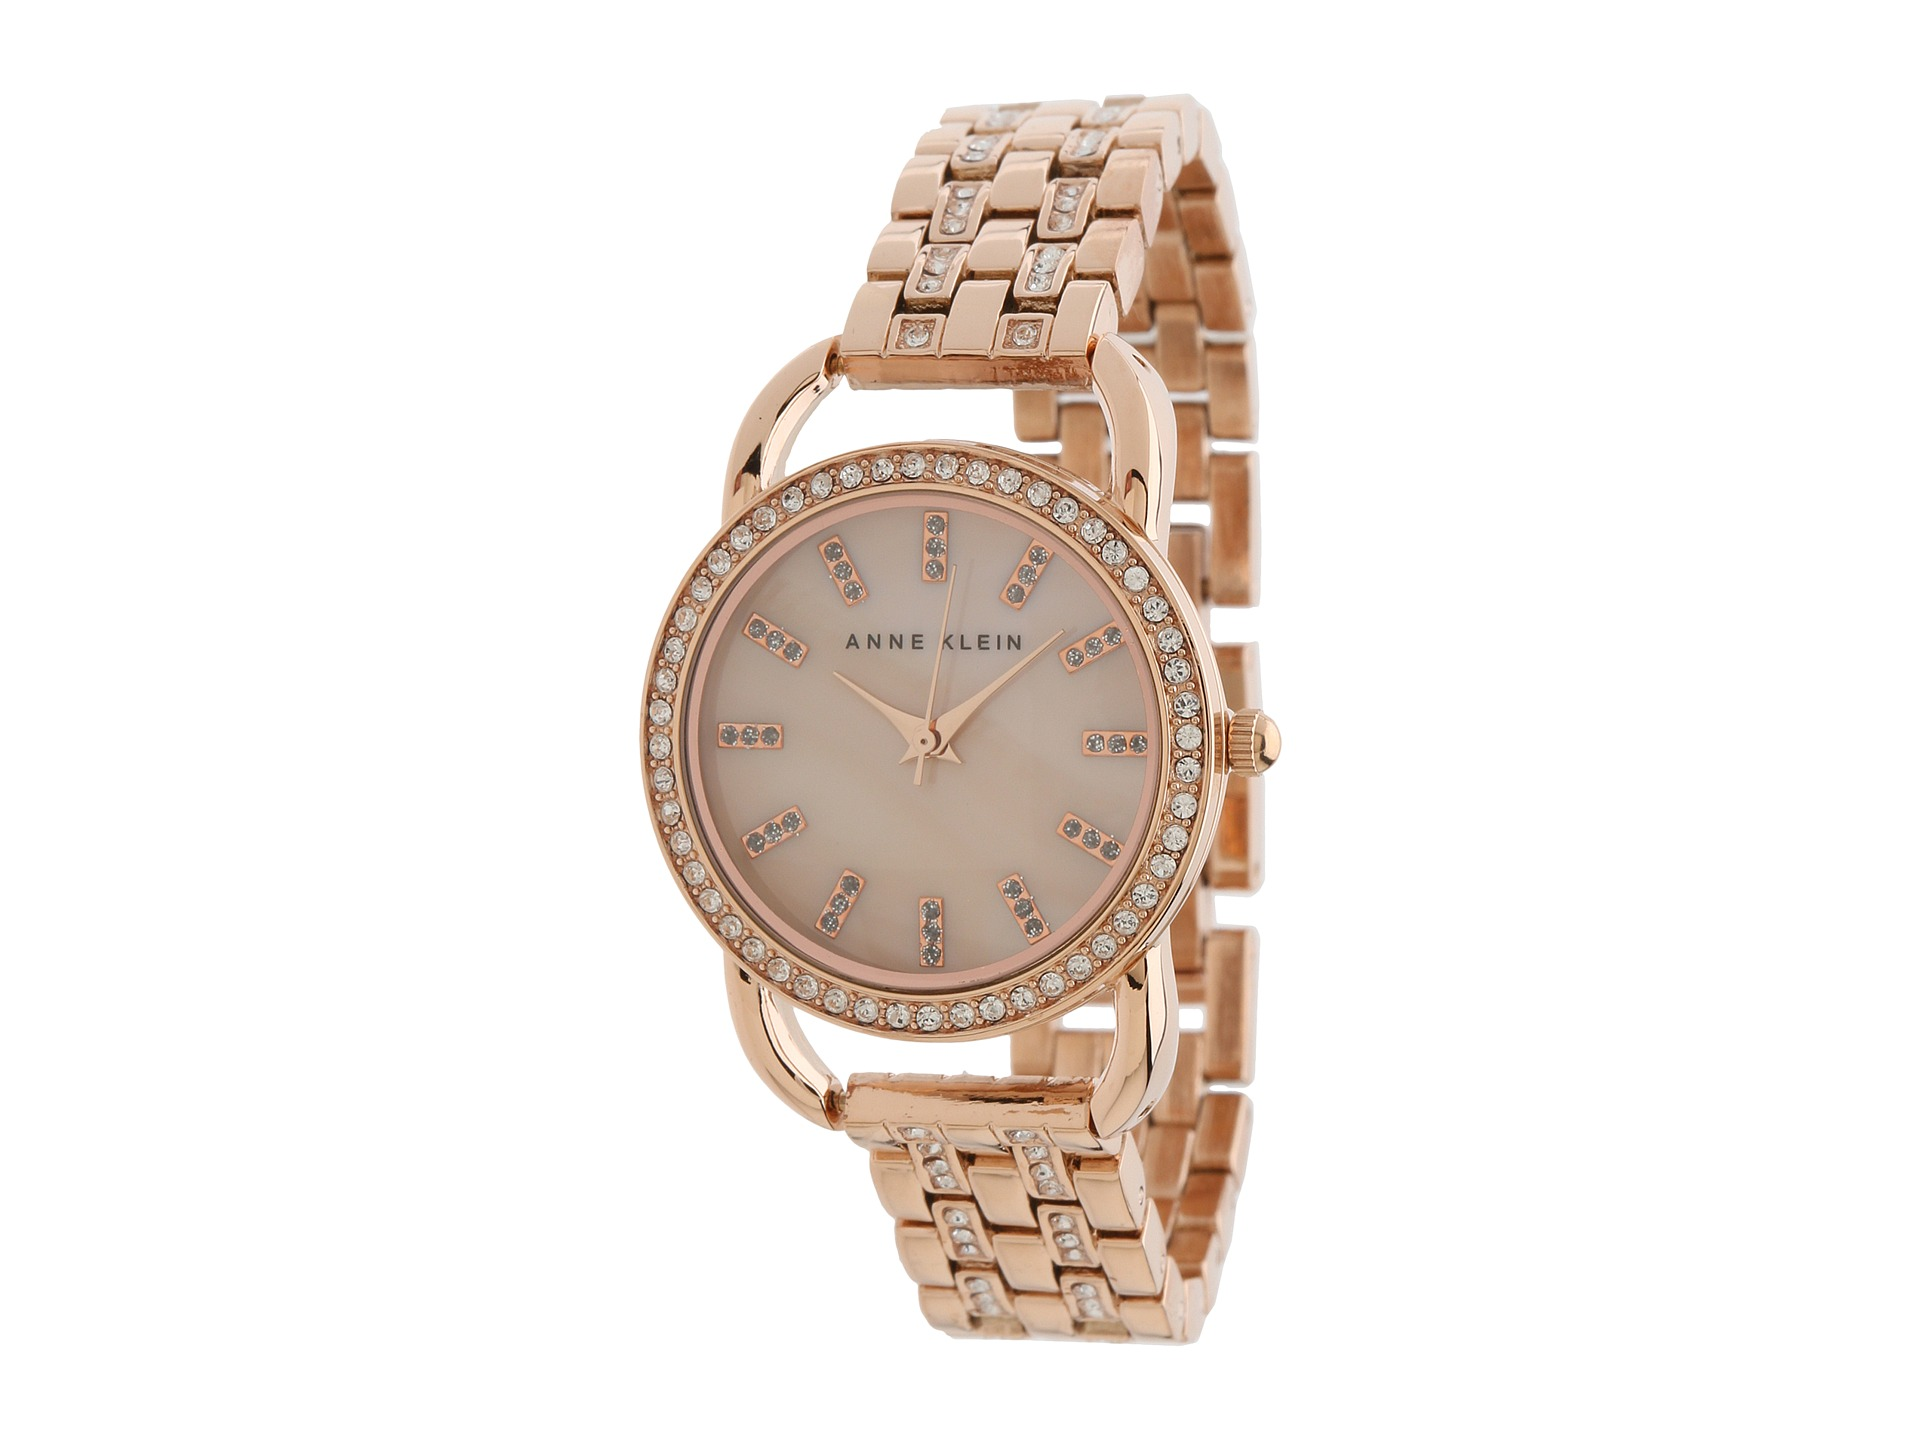 Anne klein ak 1262rmrg swarovski crystal accented dial watch rose gold shipped free at zappos for Anne klein swarovski crystals